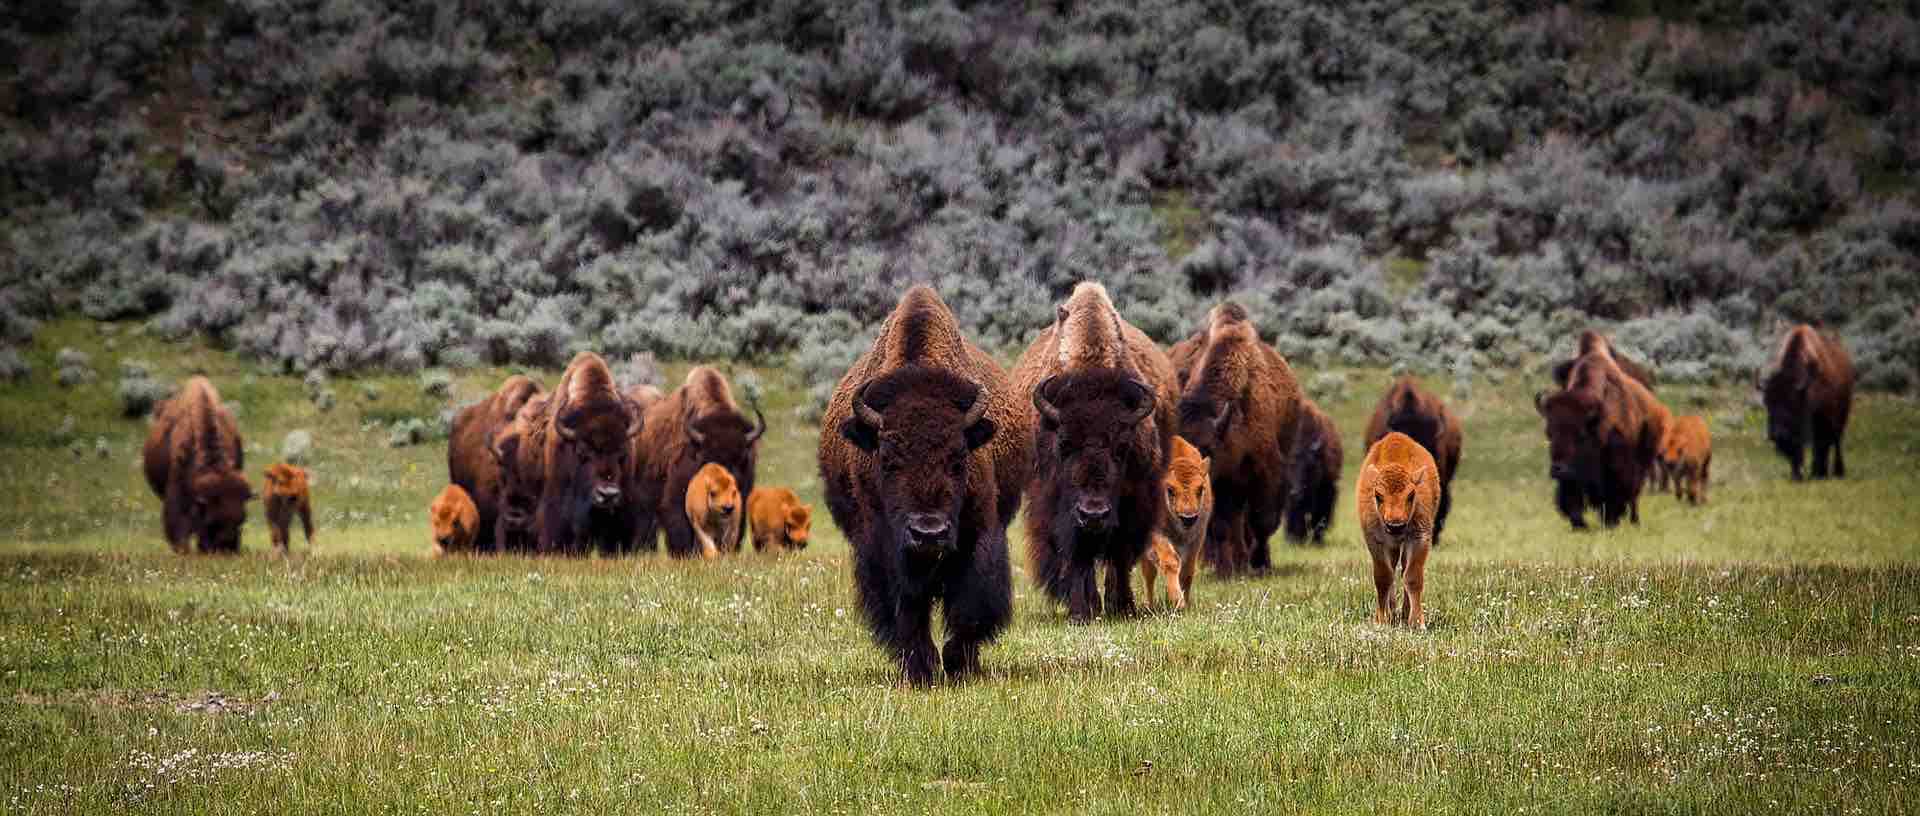 Our mission Bison